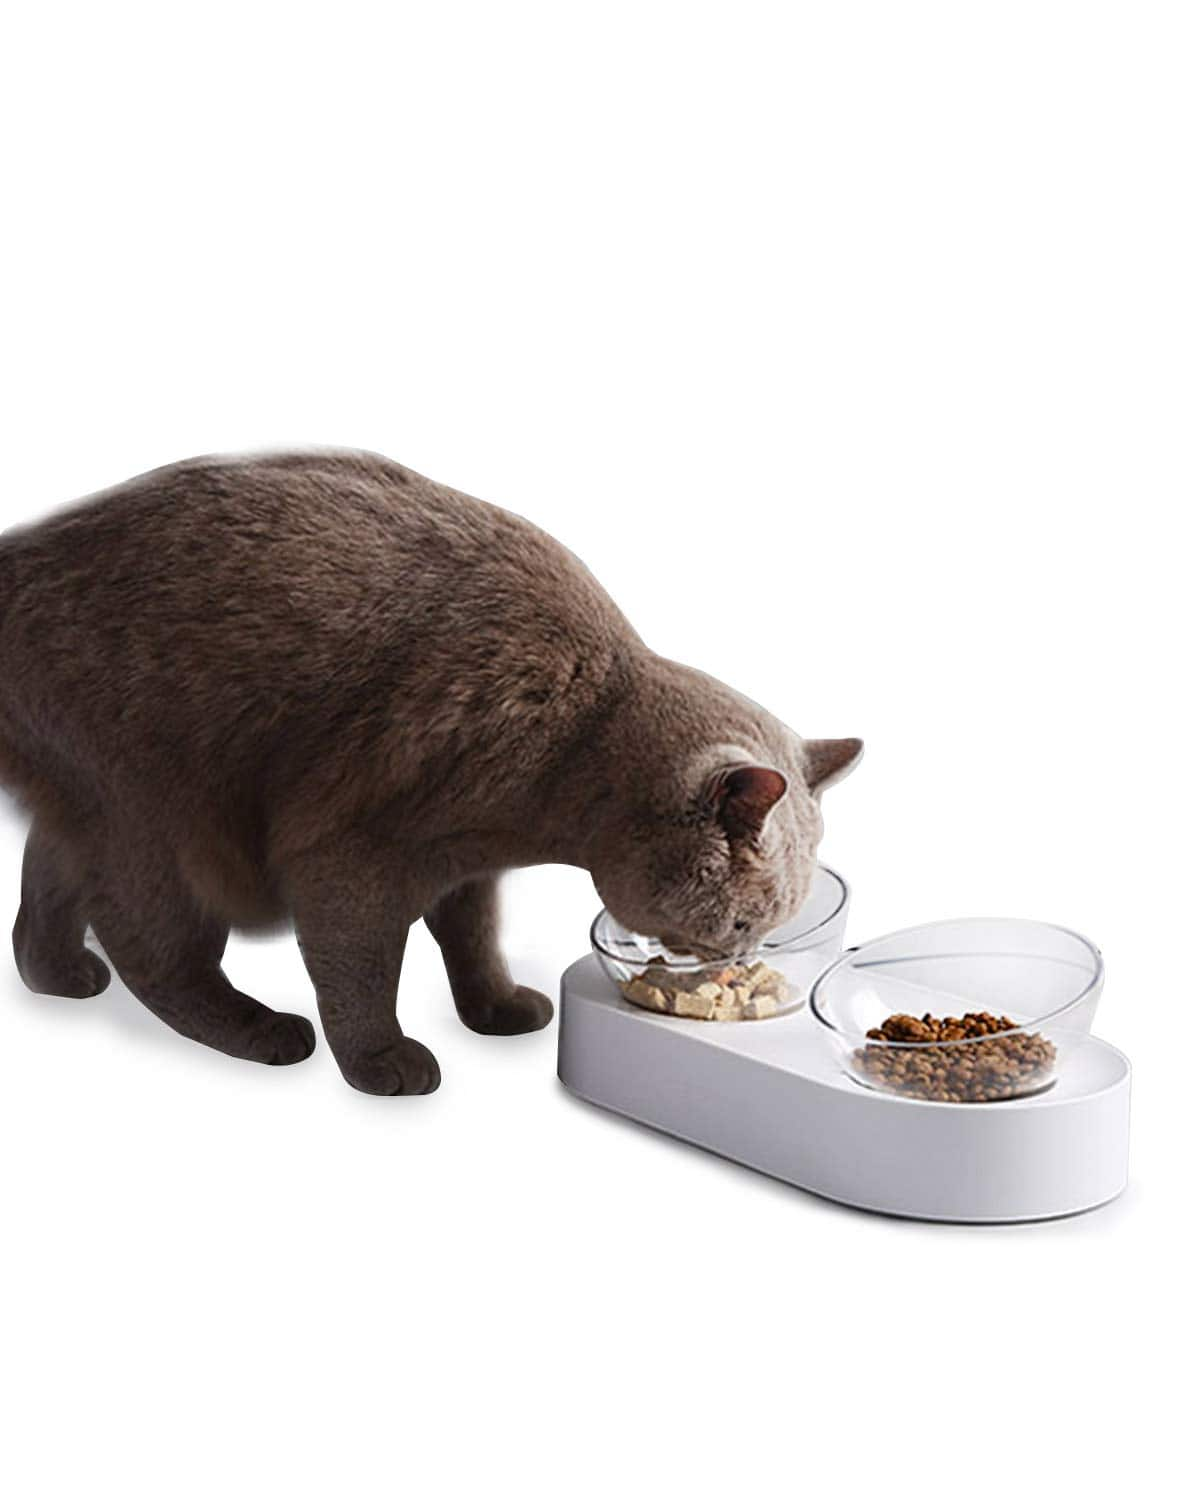 PETKIT Elevated Cat Food Transparent Bowl with Stand - $16.99 + FSSS